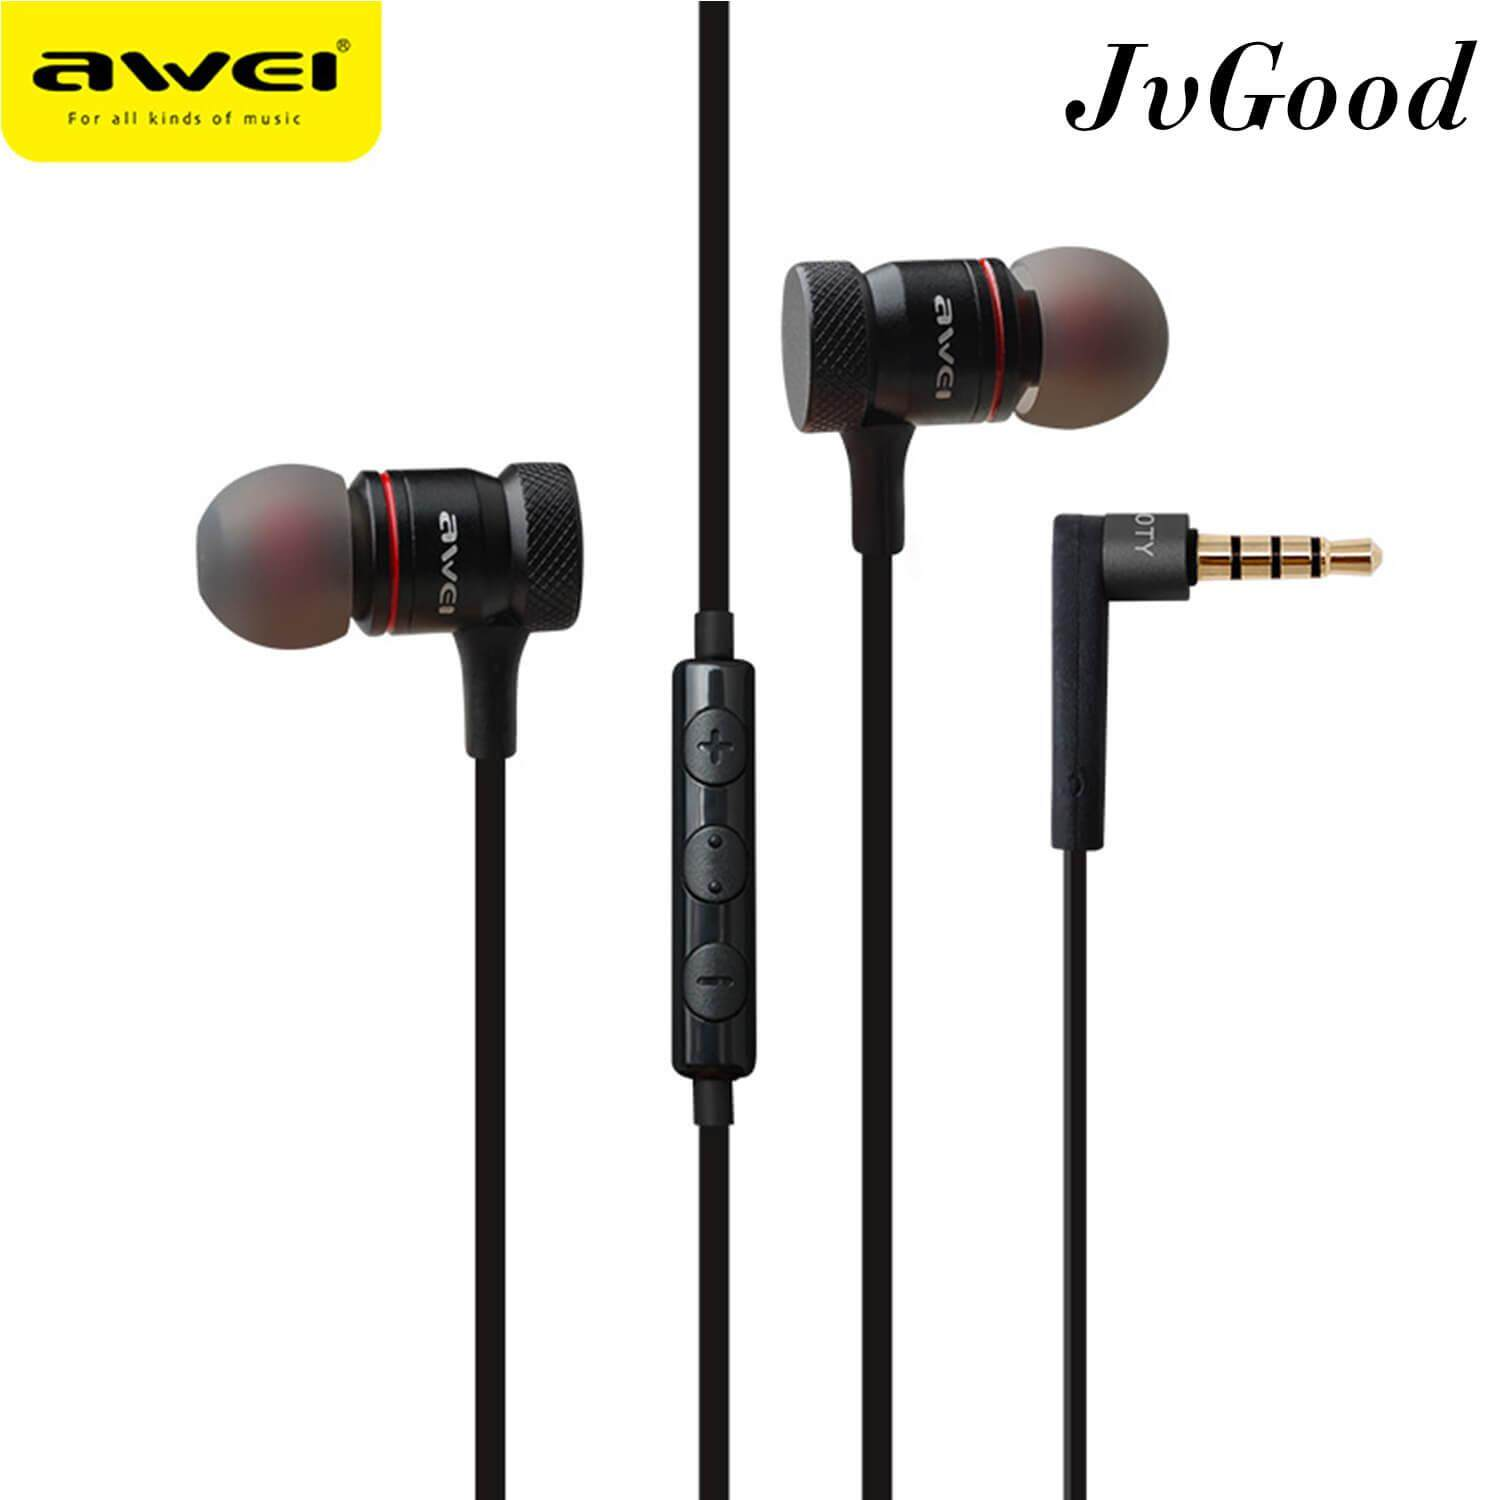 Features Remax Rm 502 Crazy Robot Wired In Ear Earphones Headphones Original S1 Pro Sport Earphone Jvgood Earbuds Awei Es 70ty 35mm Headset With